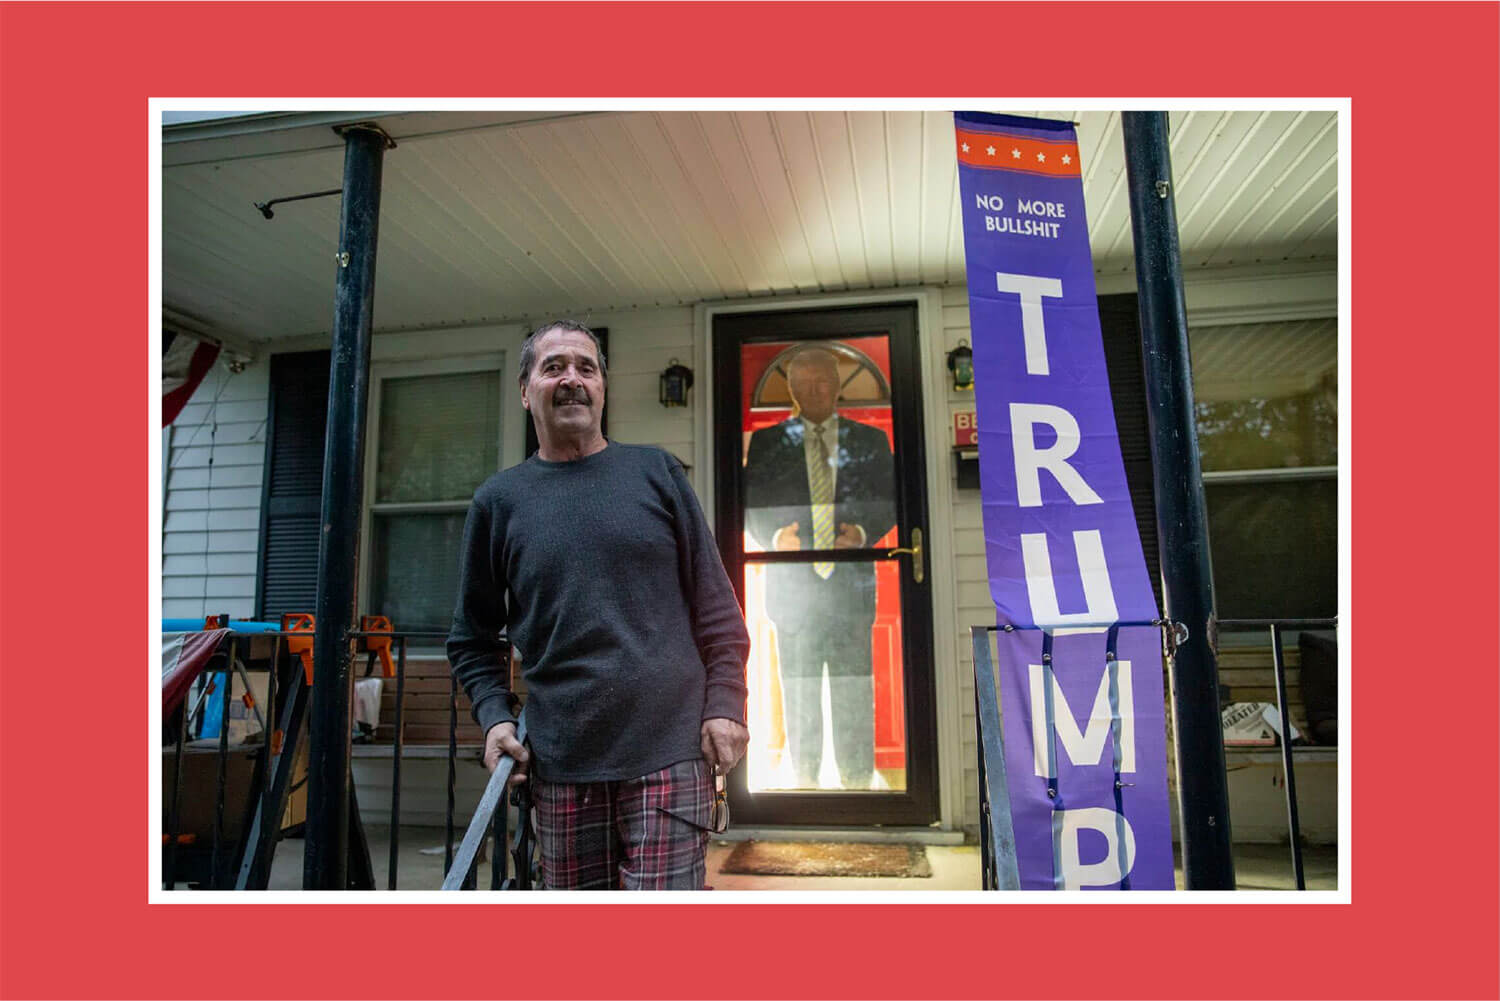 Barry McGuane in a gray shirt standing on his porch next to a TRUMP NO MORE BULLSHIT vertical blue banner and in front of a cut out life size photo of Donald Trump.